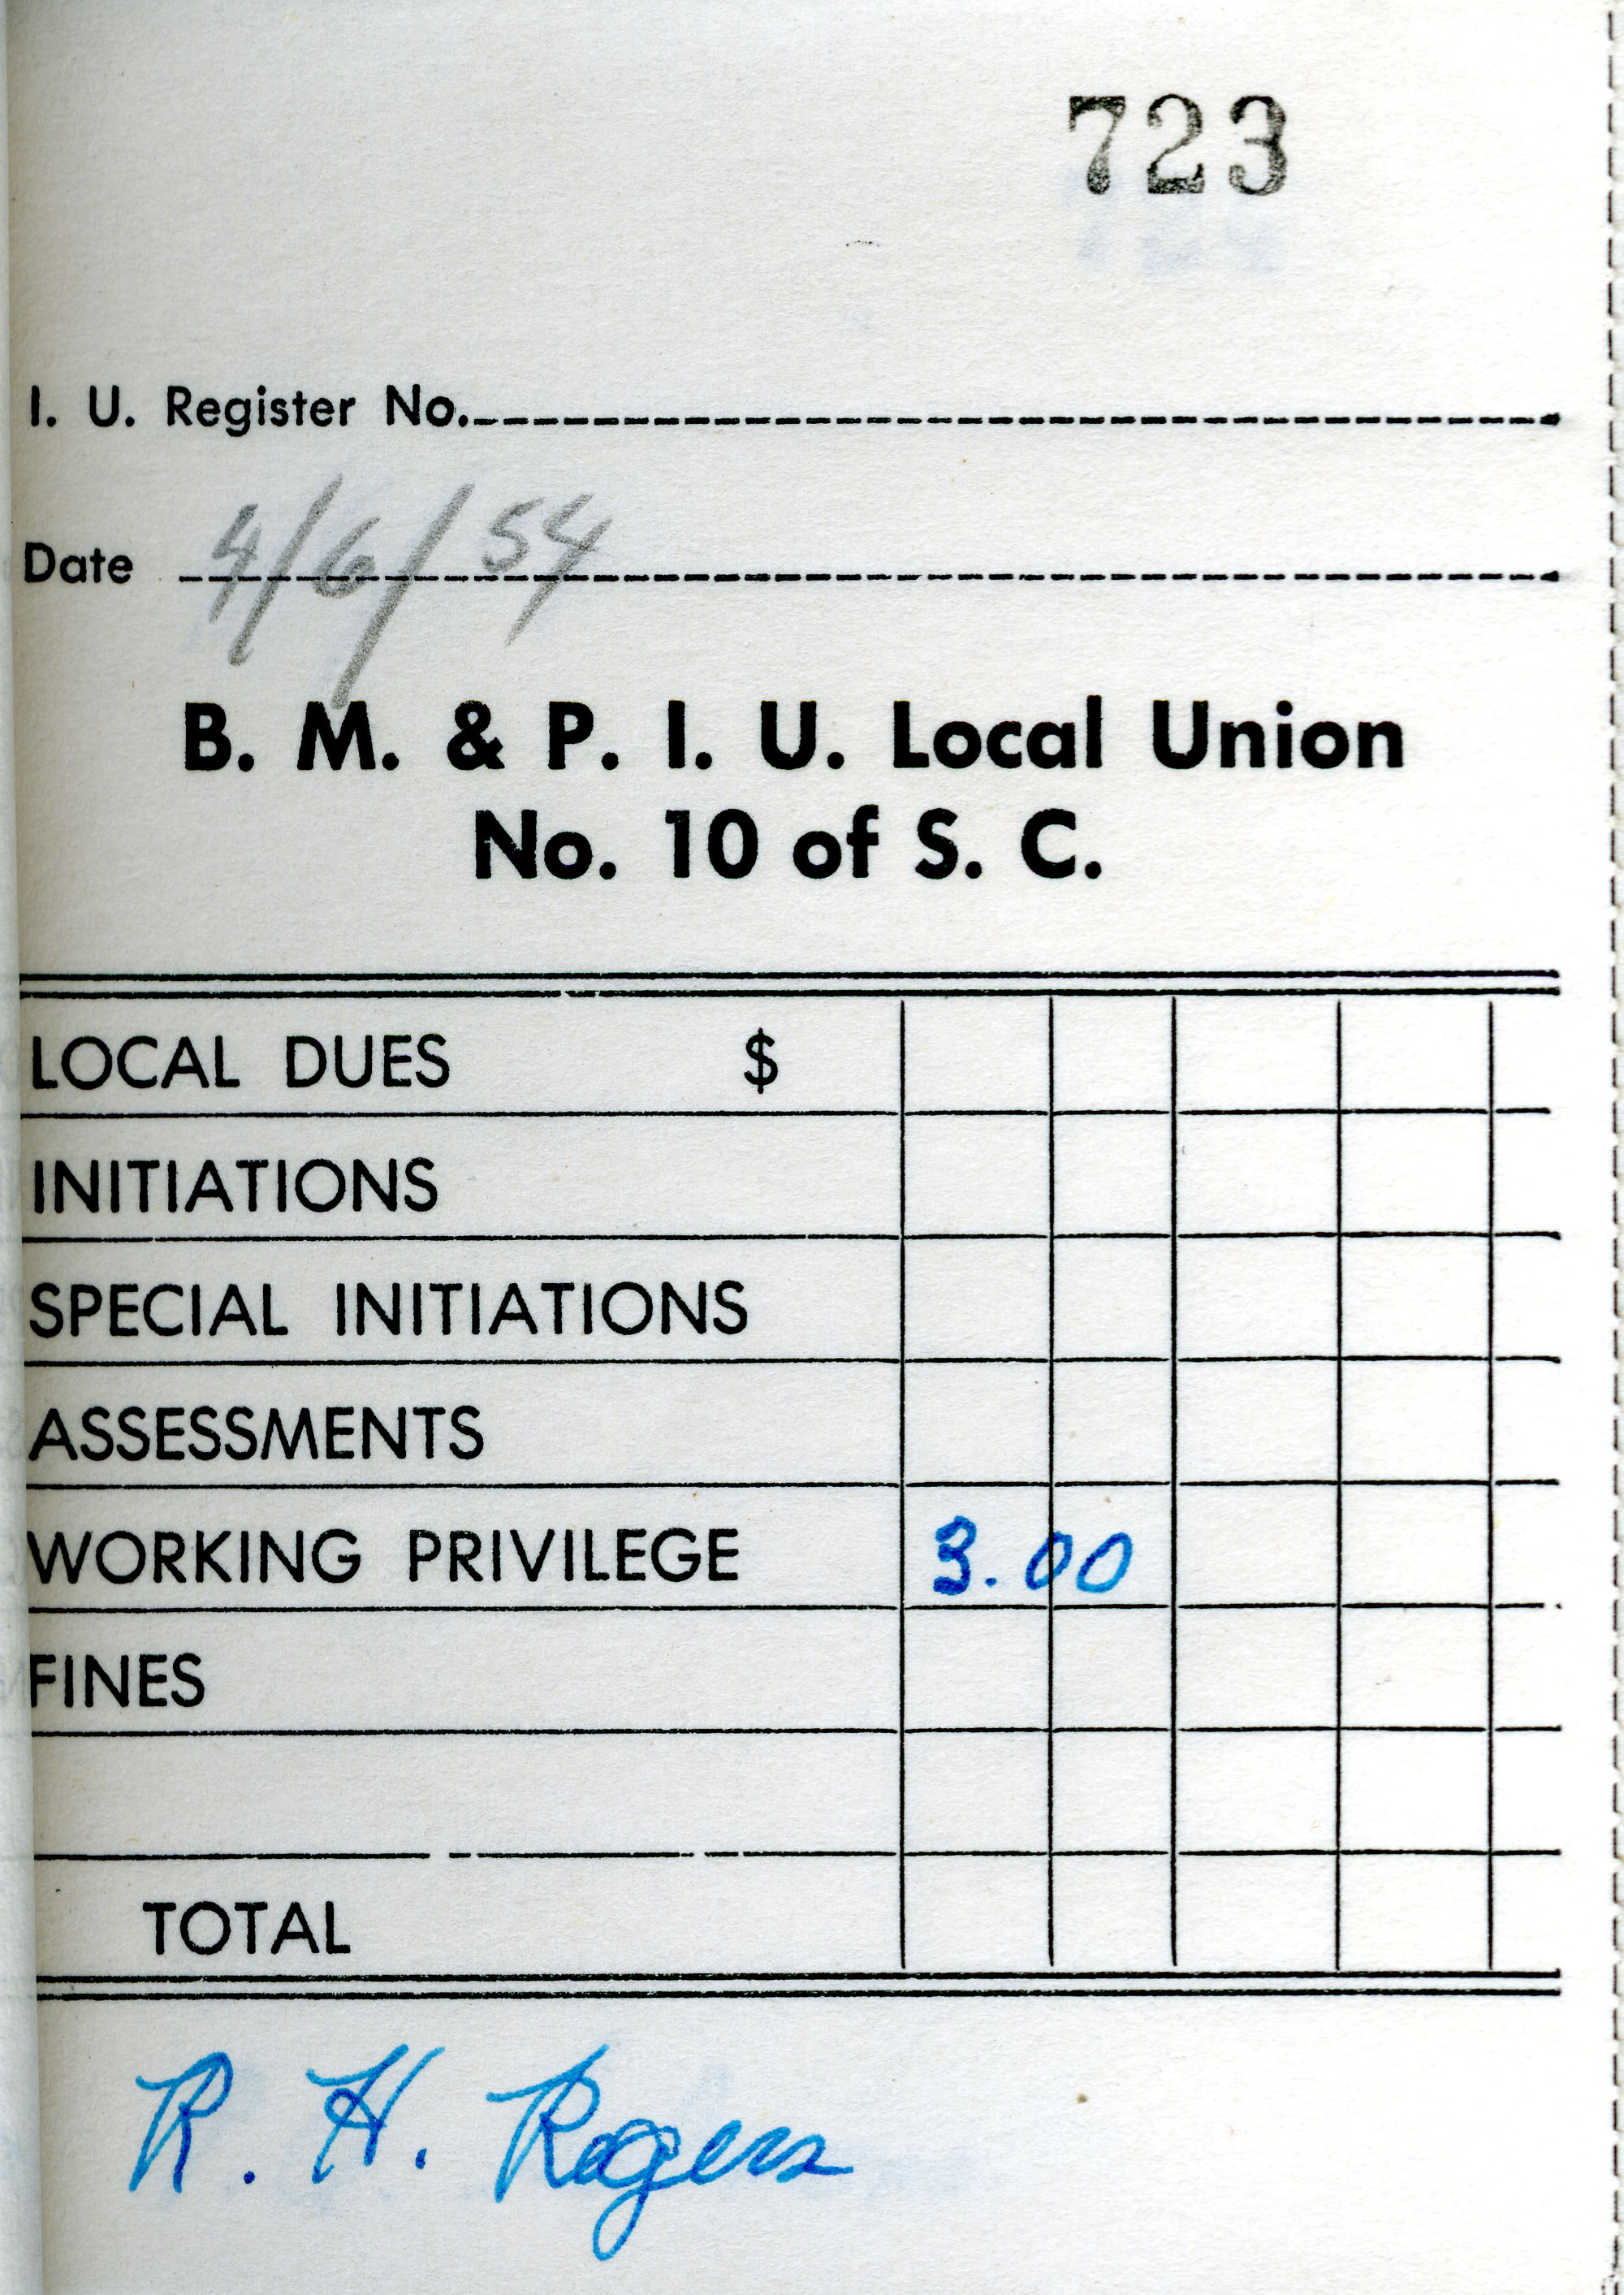 Receipt Book 5, Page 23